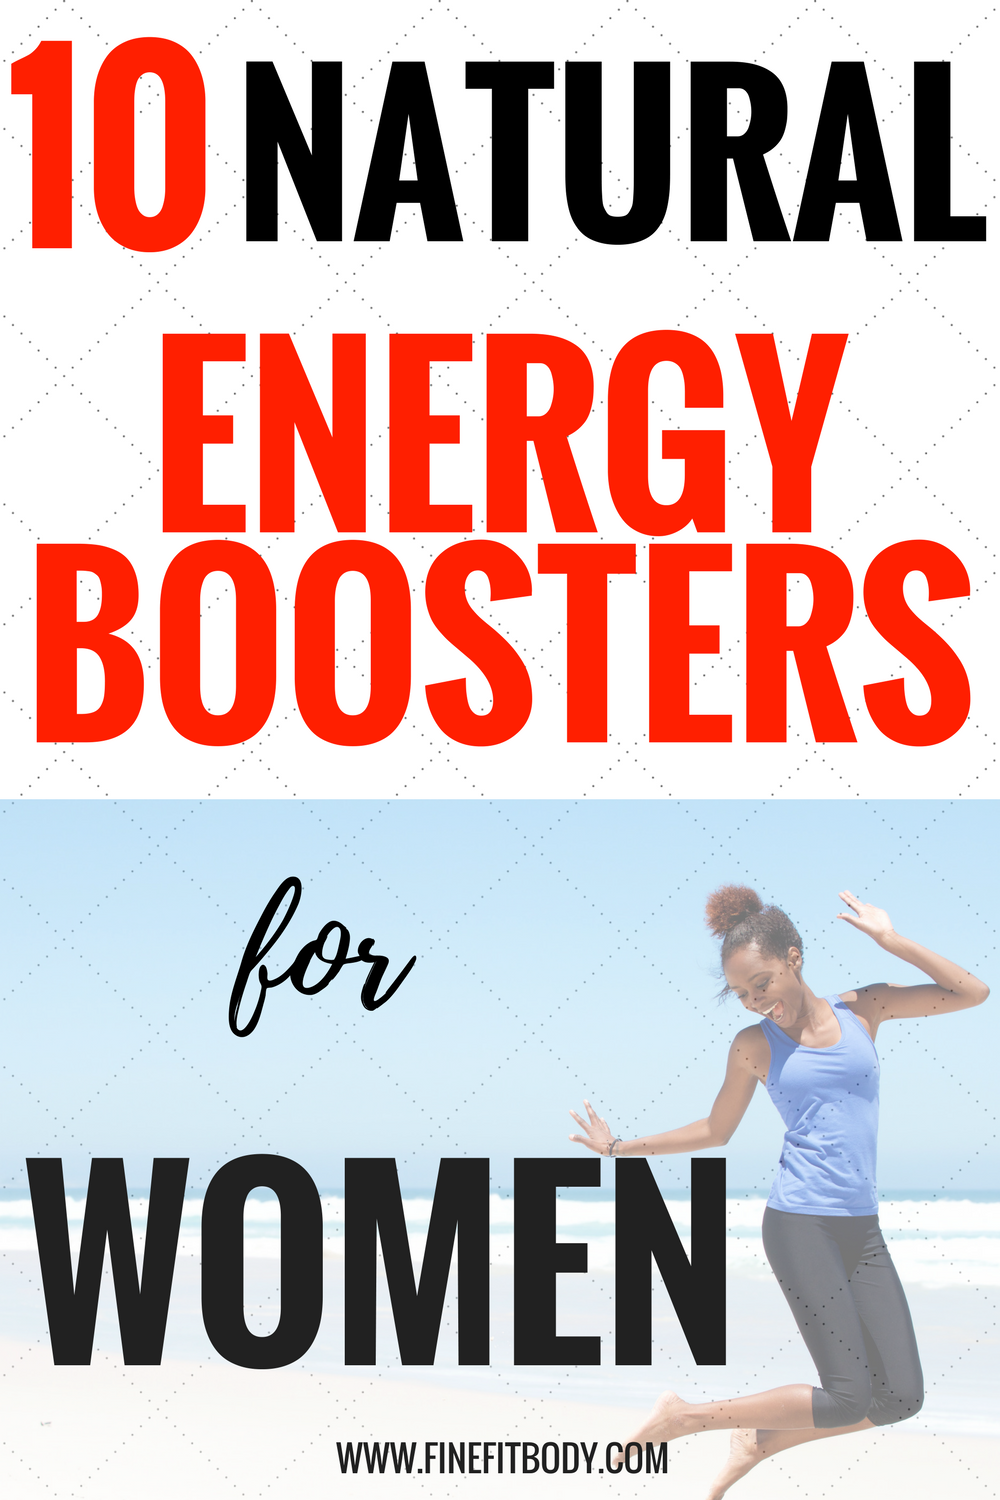 I love all of these natural energy boosters! These natural energy tips are great for me to get through my day! #10 is my the best natural energy pill for women.